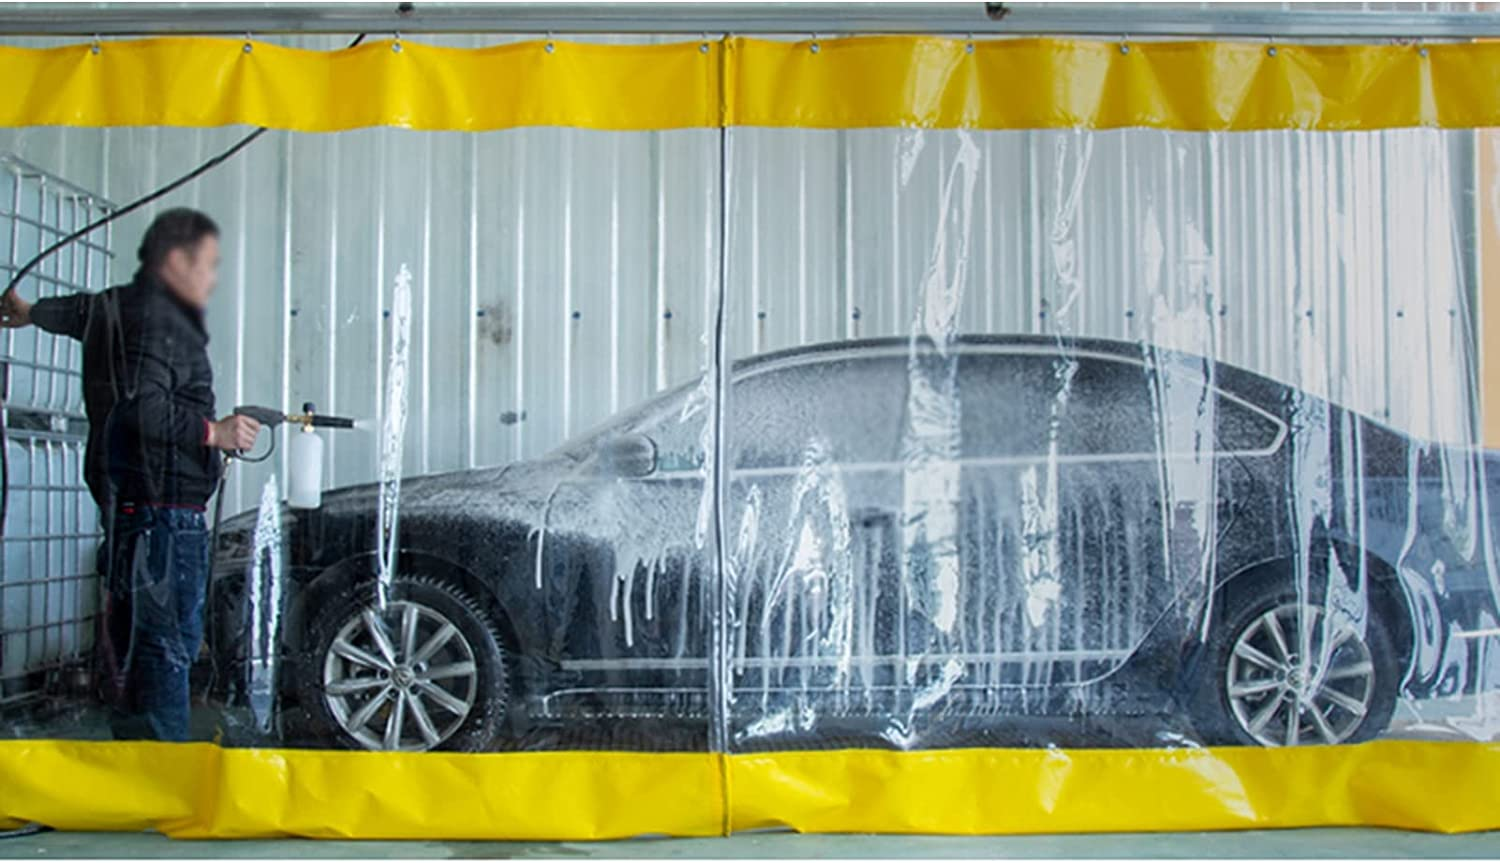 AMSXNOO Waterproof Vinyl Curtain with Collap Topics on TV 0.6mm Eyelets Soft quality assurance